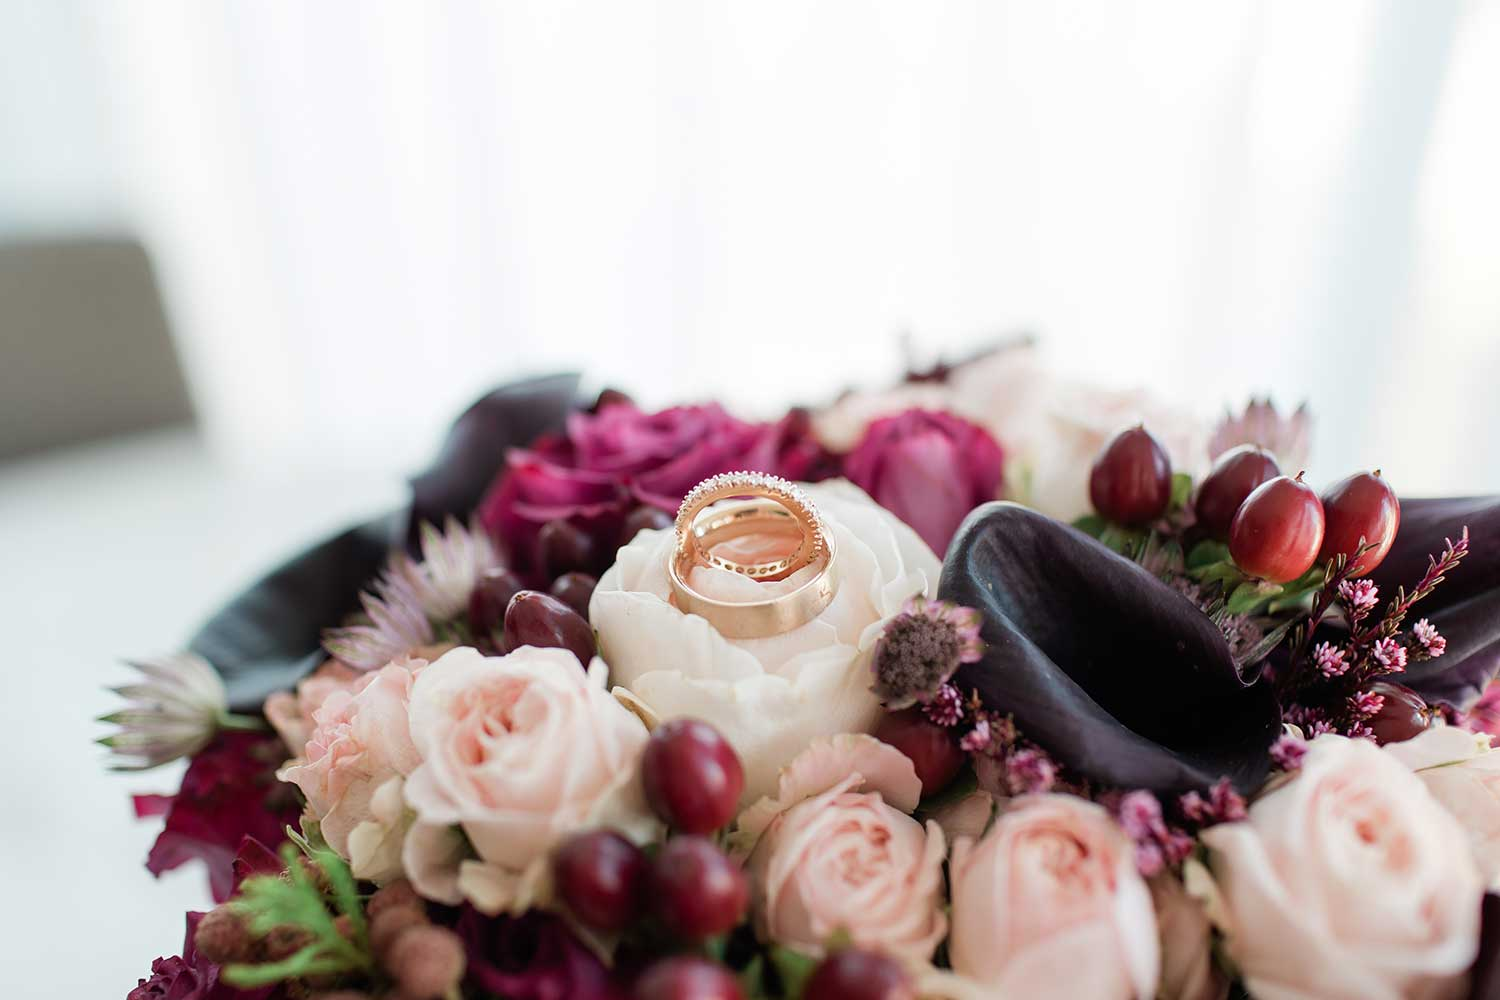 Wedding rings and the flower bouquet